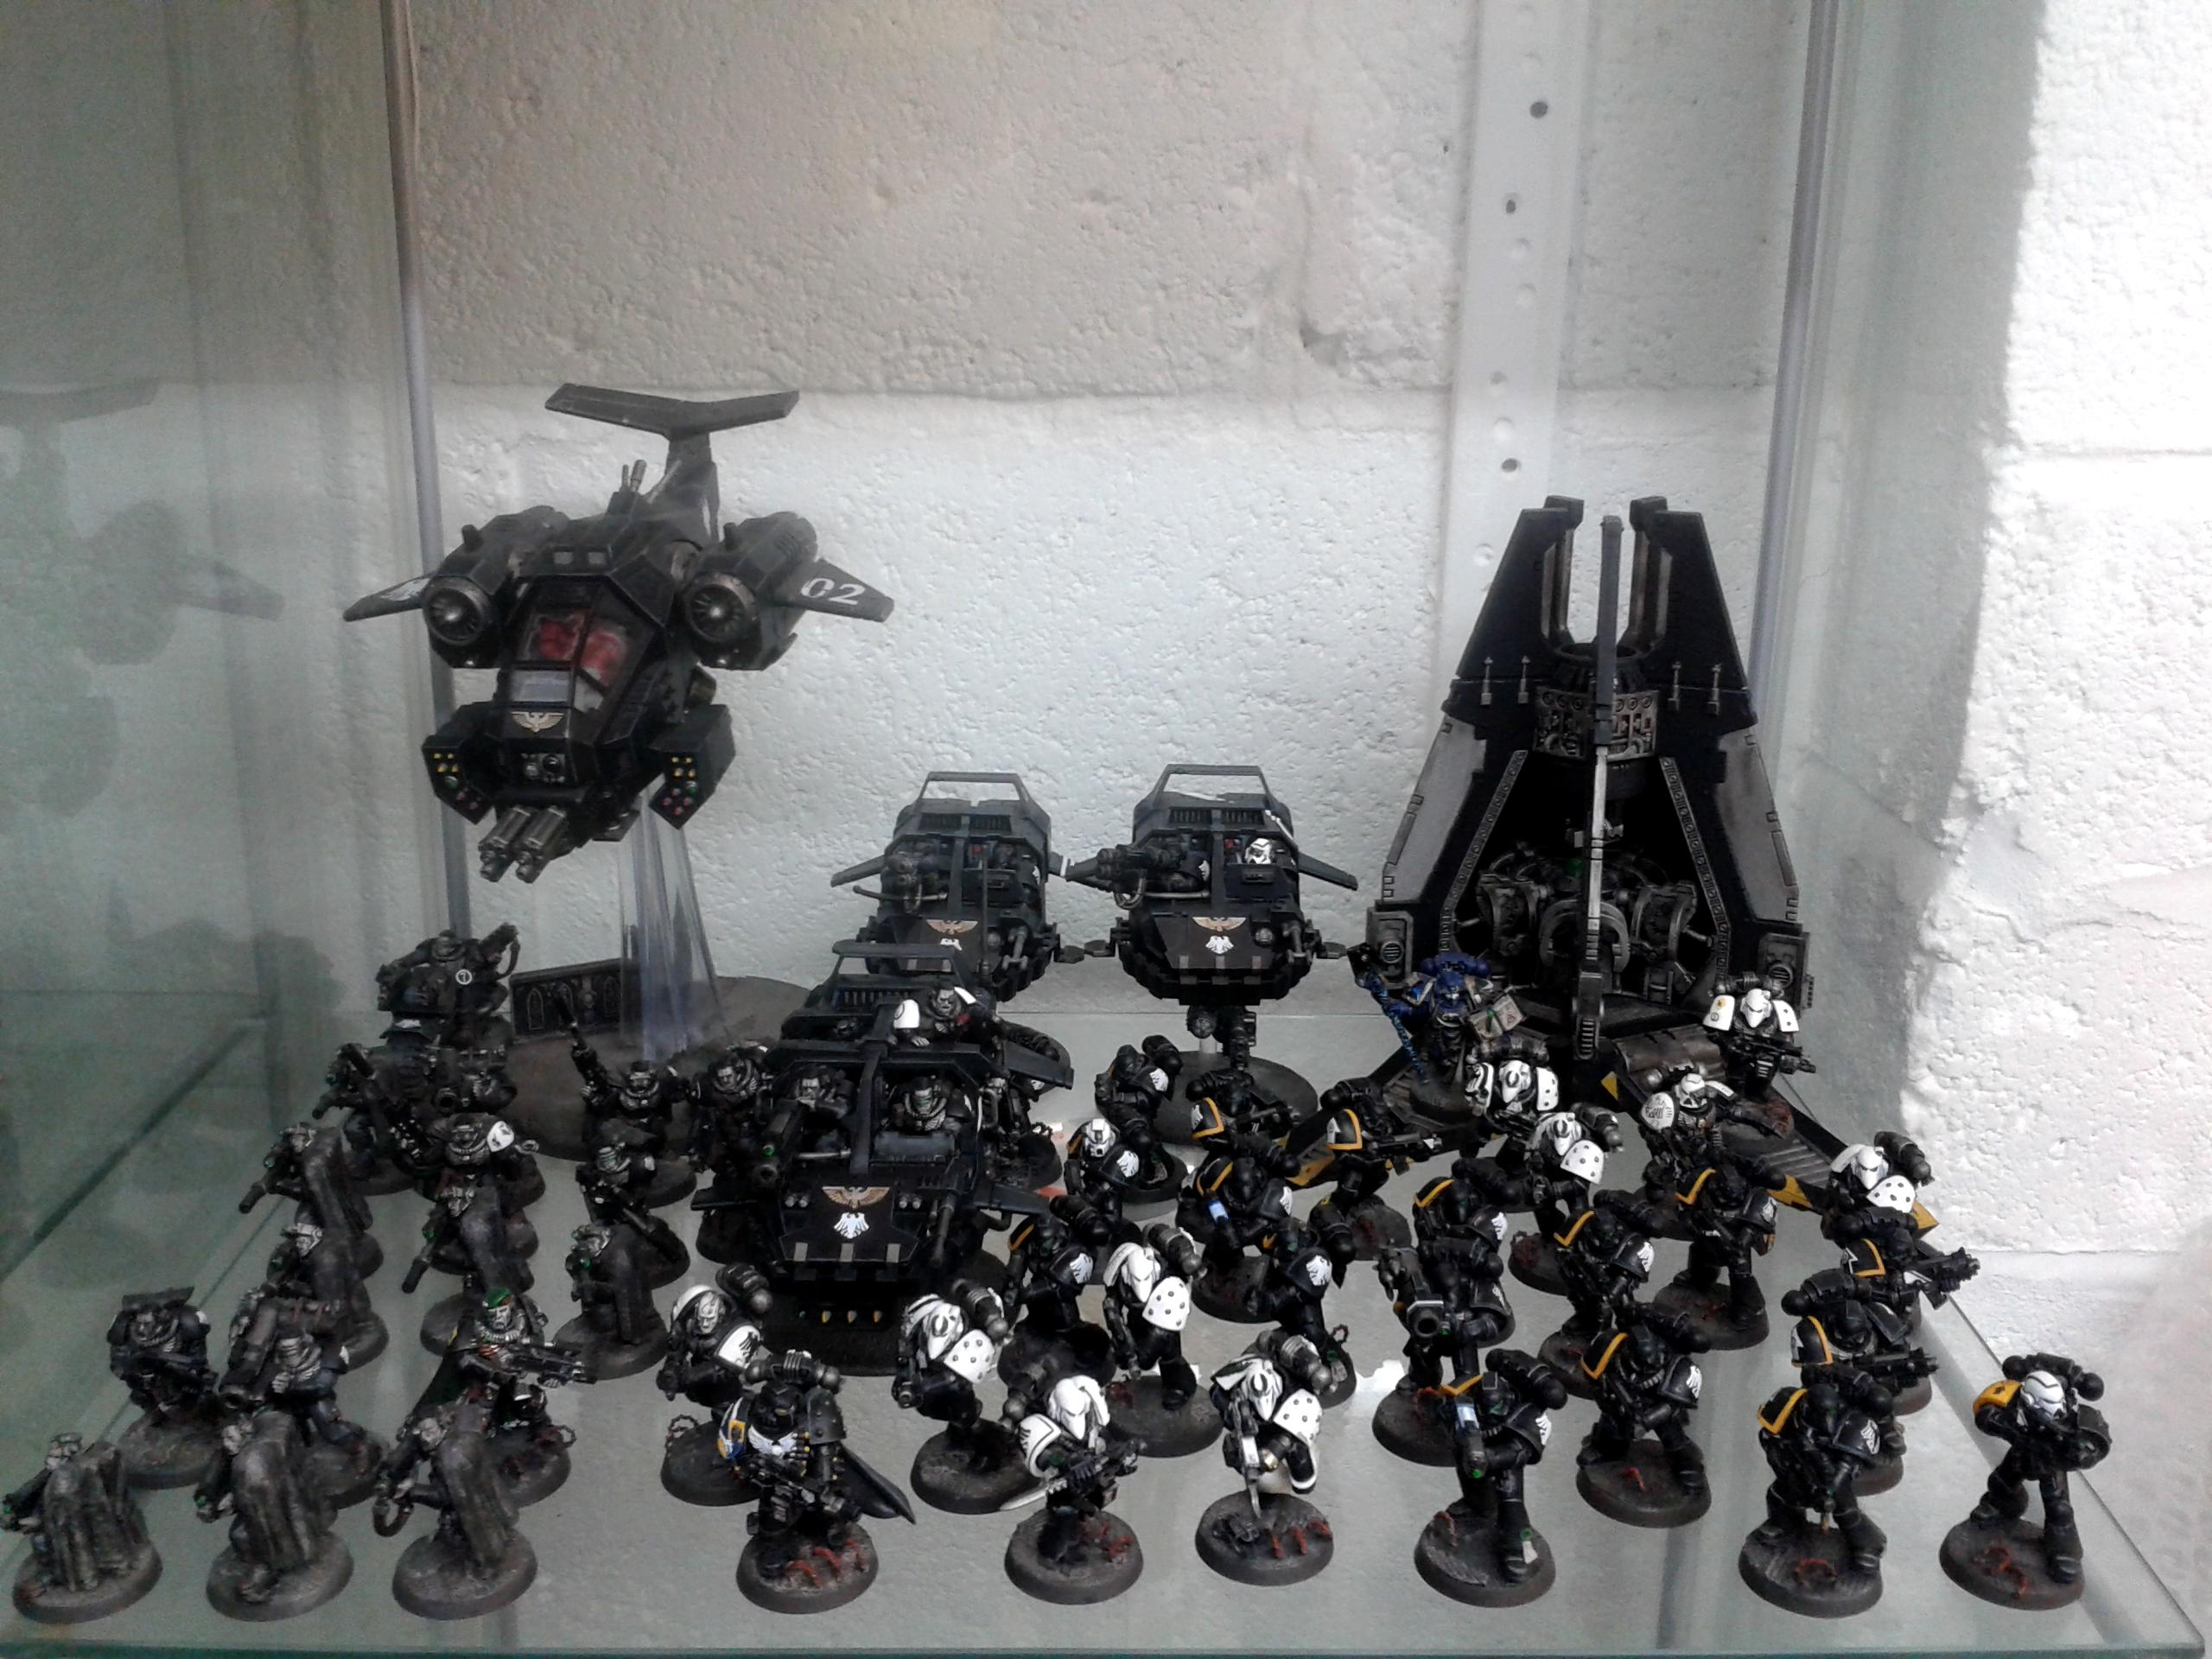 Army, As, Assault, Battle, Bike, Black, Bolter, Boltgun, Captain, Chapter, Company, Counts, Devastator, Dreadnought, Drop, Force, Guard, Gun, Issodon, Land, Launcher, Lia, Librarian, Markings, Missile, Pistol, Plasme, Pod, Predator, Raven, Rhino, Scouts, Sicaran, Space, Space Marines, Speeder, Squad, Staff, Stave, Stealth, Sternguard, Storm, Tactical, Tactics, Tag Abuse, Tank, Veteran, Warhammer 40,000, Warhammer Fantasy, Yellow